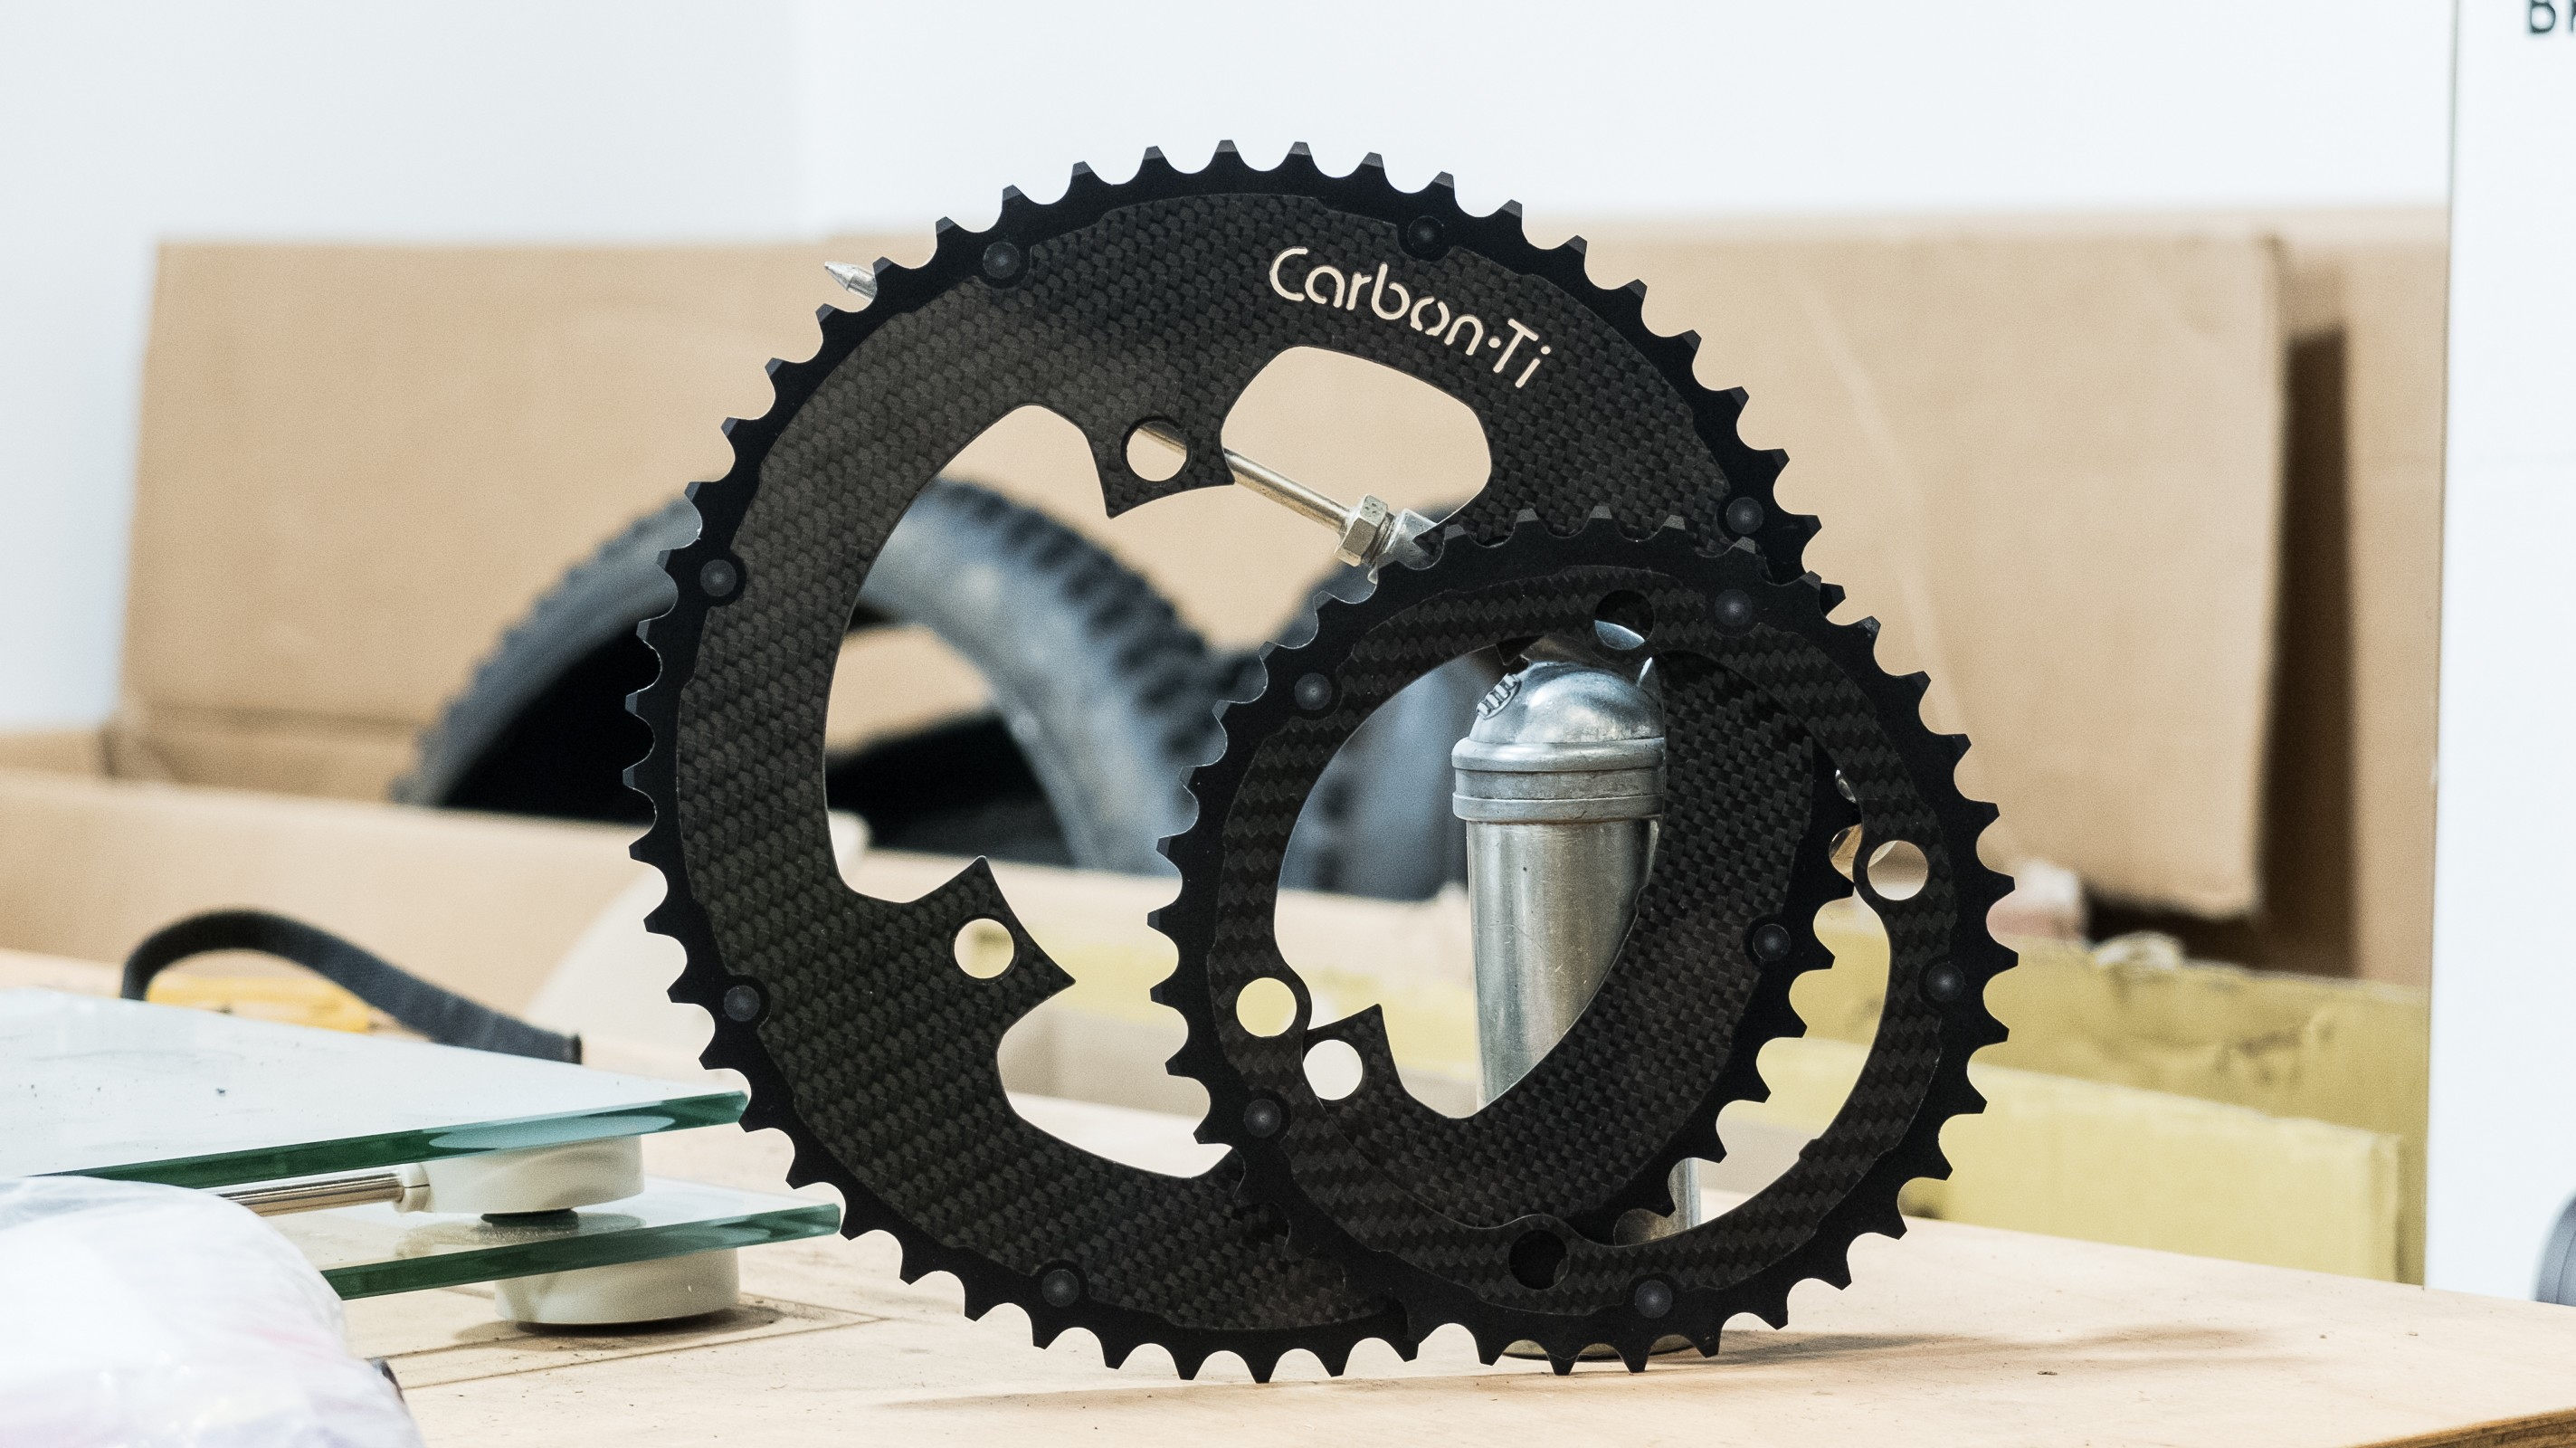 Carbon-Ti's chainrings are mad looking things